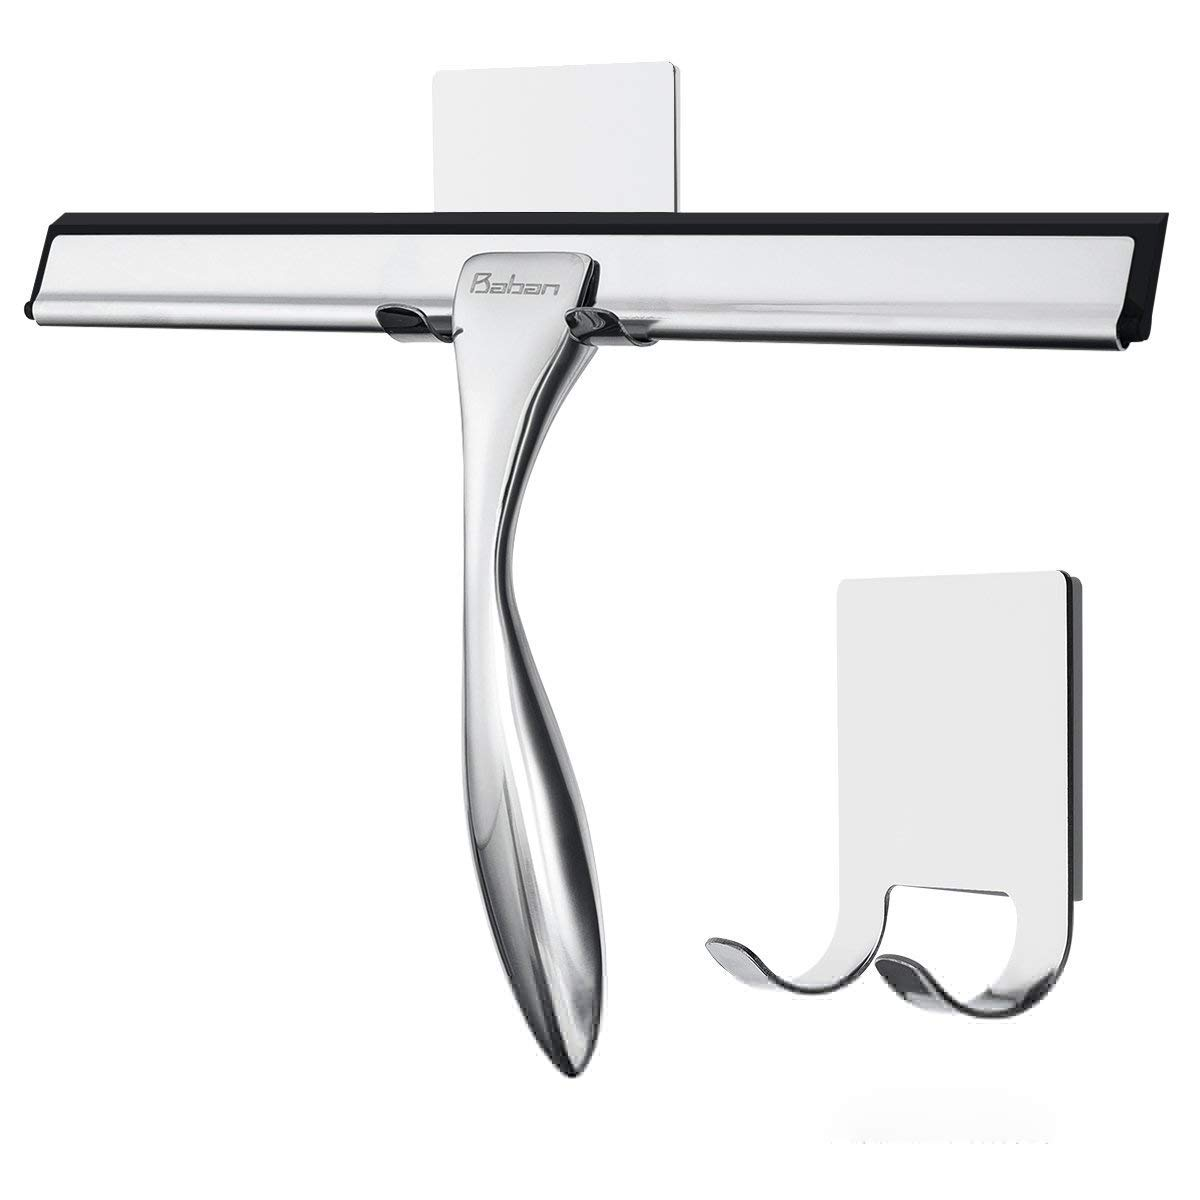 Baban Shower Squeegee with 2 Strong Adhesive Holder Hooks, Stainless Steel Glass Squeegee Window Squeegee - All-Purpose Squeegee for Bathroom/Kitchen/Car Glass/Mirror/Shower Door, 9.6 Inch, Chrome by Baban